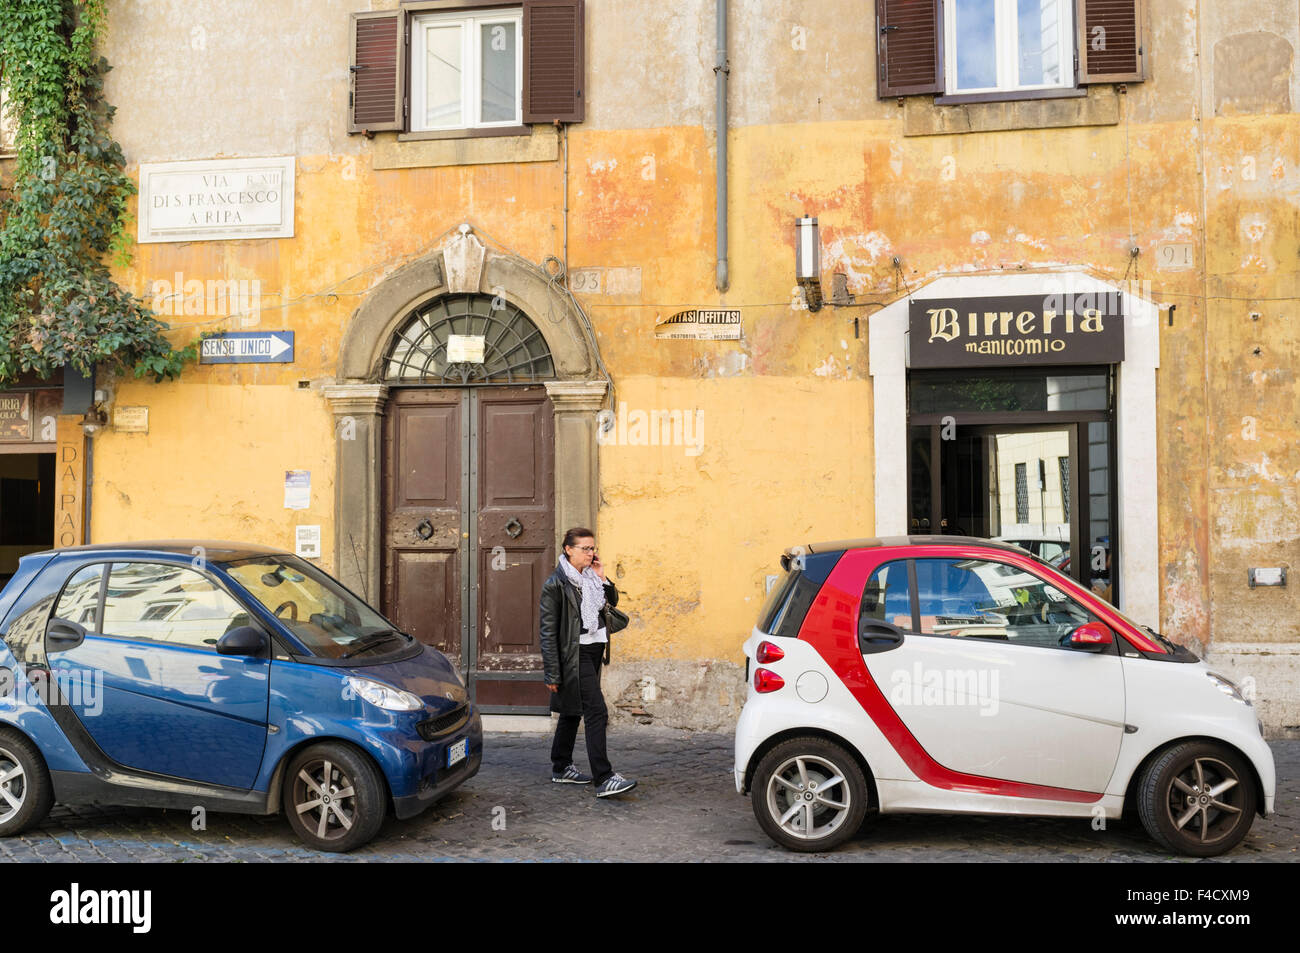 Street scene with New Mini Fiat cars in Trastevere district. Rome, Italy - Stock Image